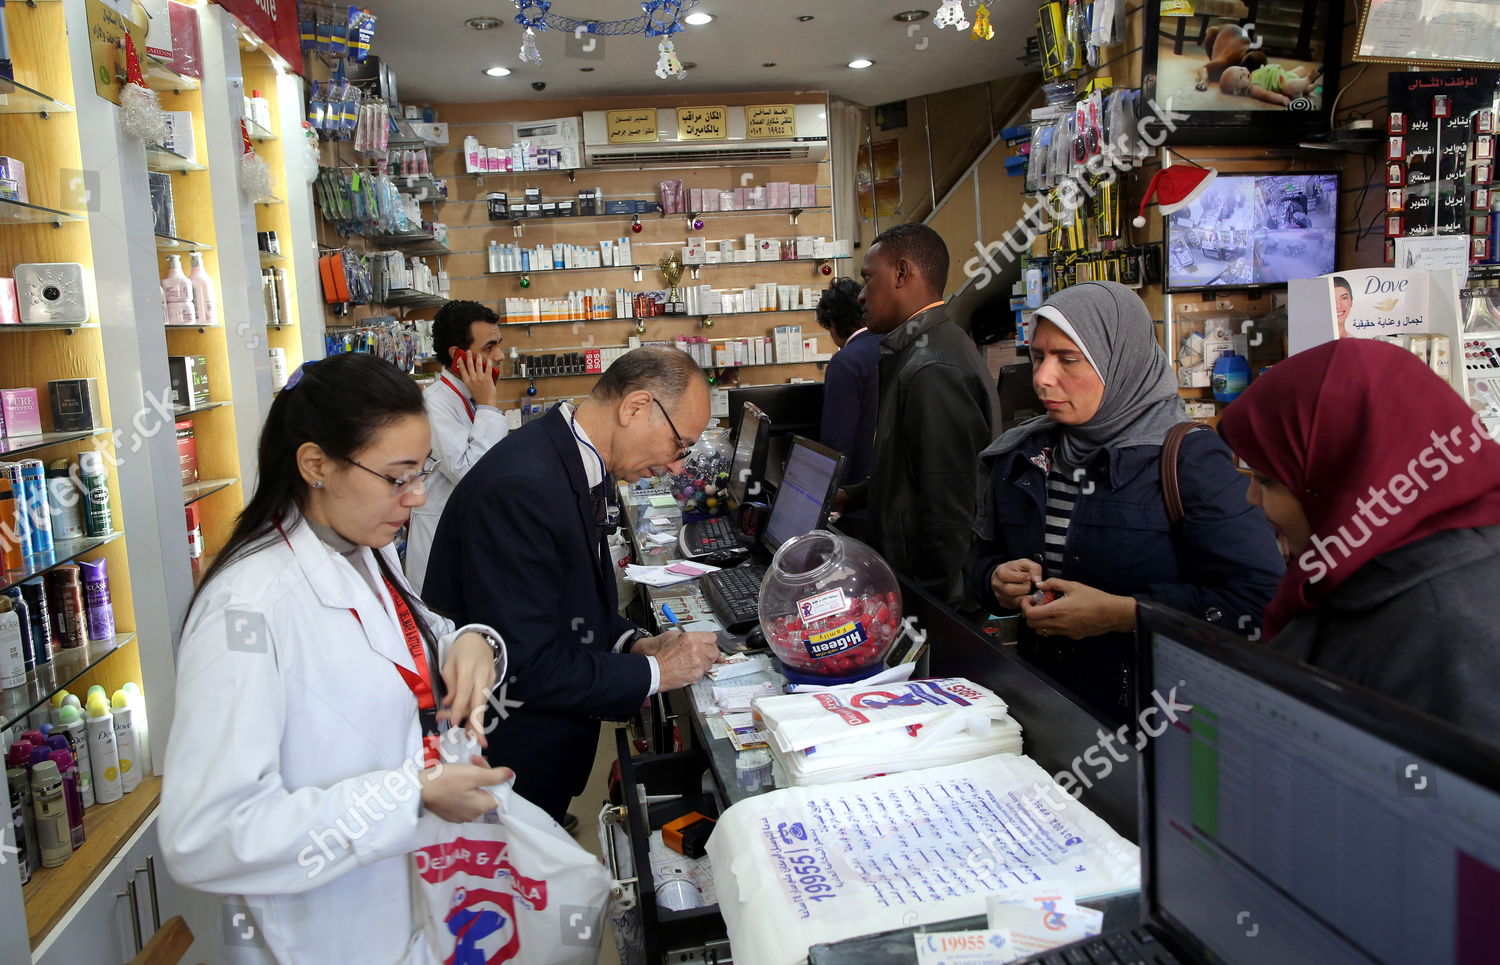 Customer buy medicine pharmacy Cairo Egypt 15 Editorial Stock Photo - Stock Image | Shutterstock